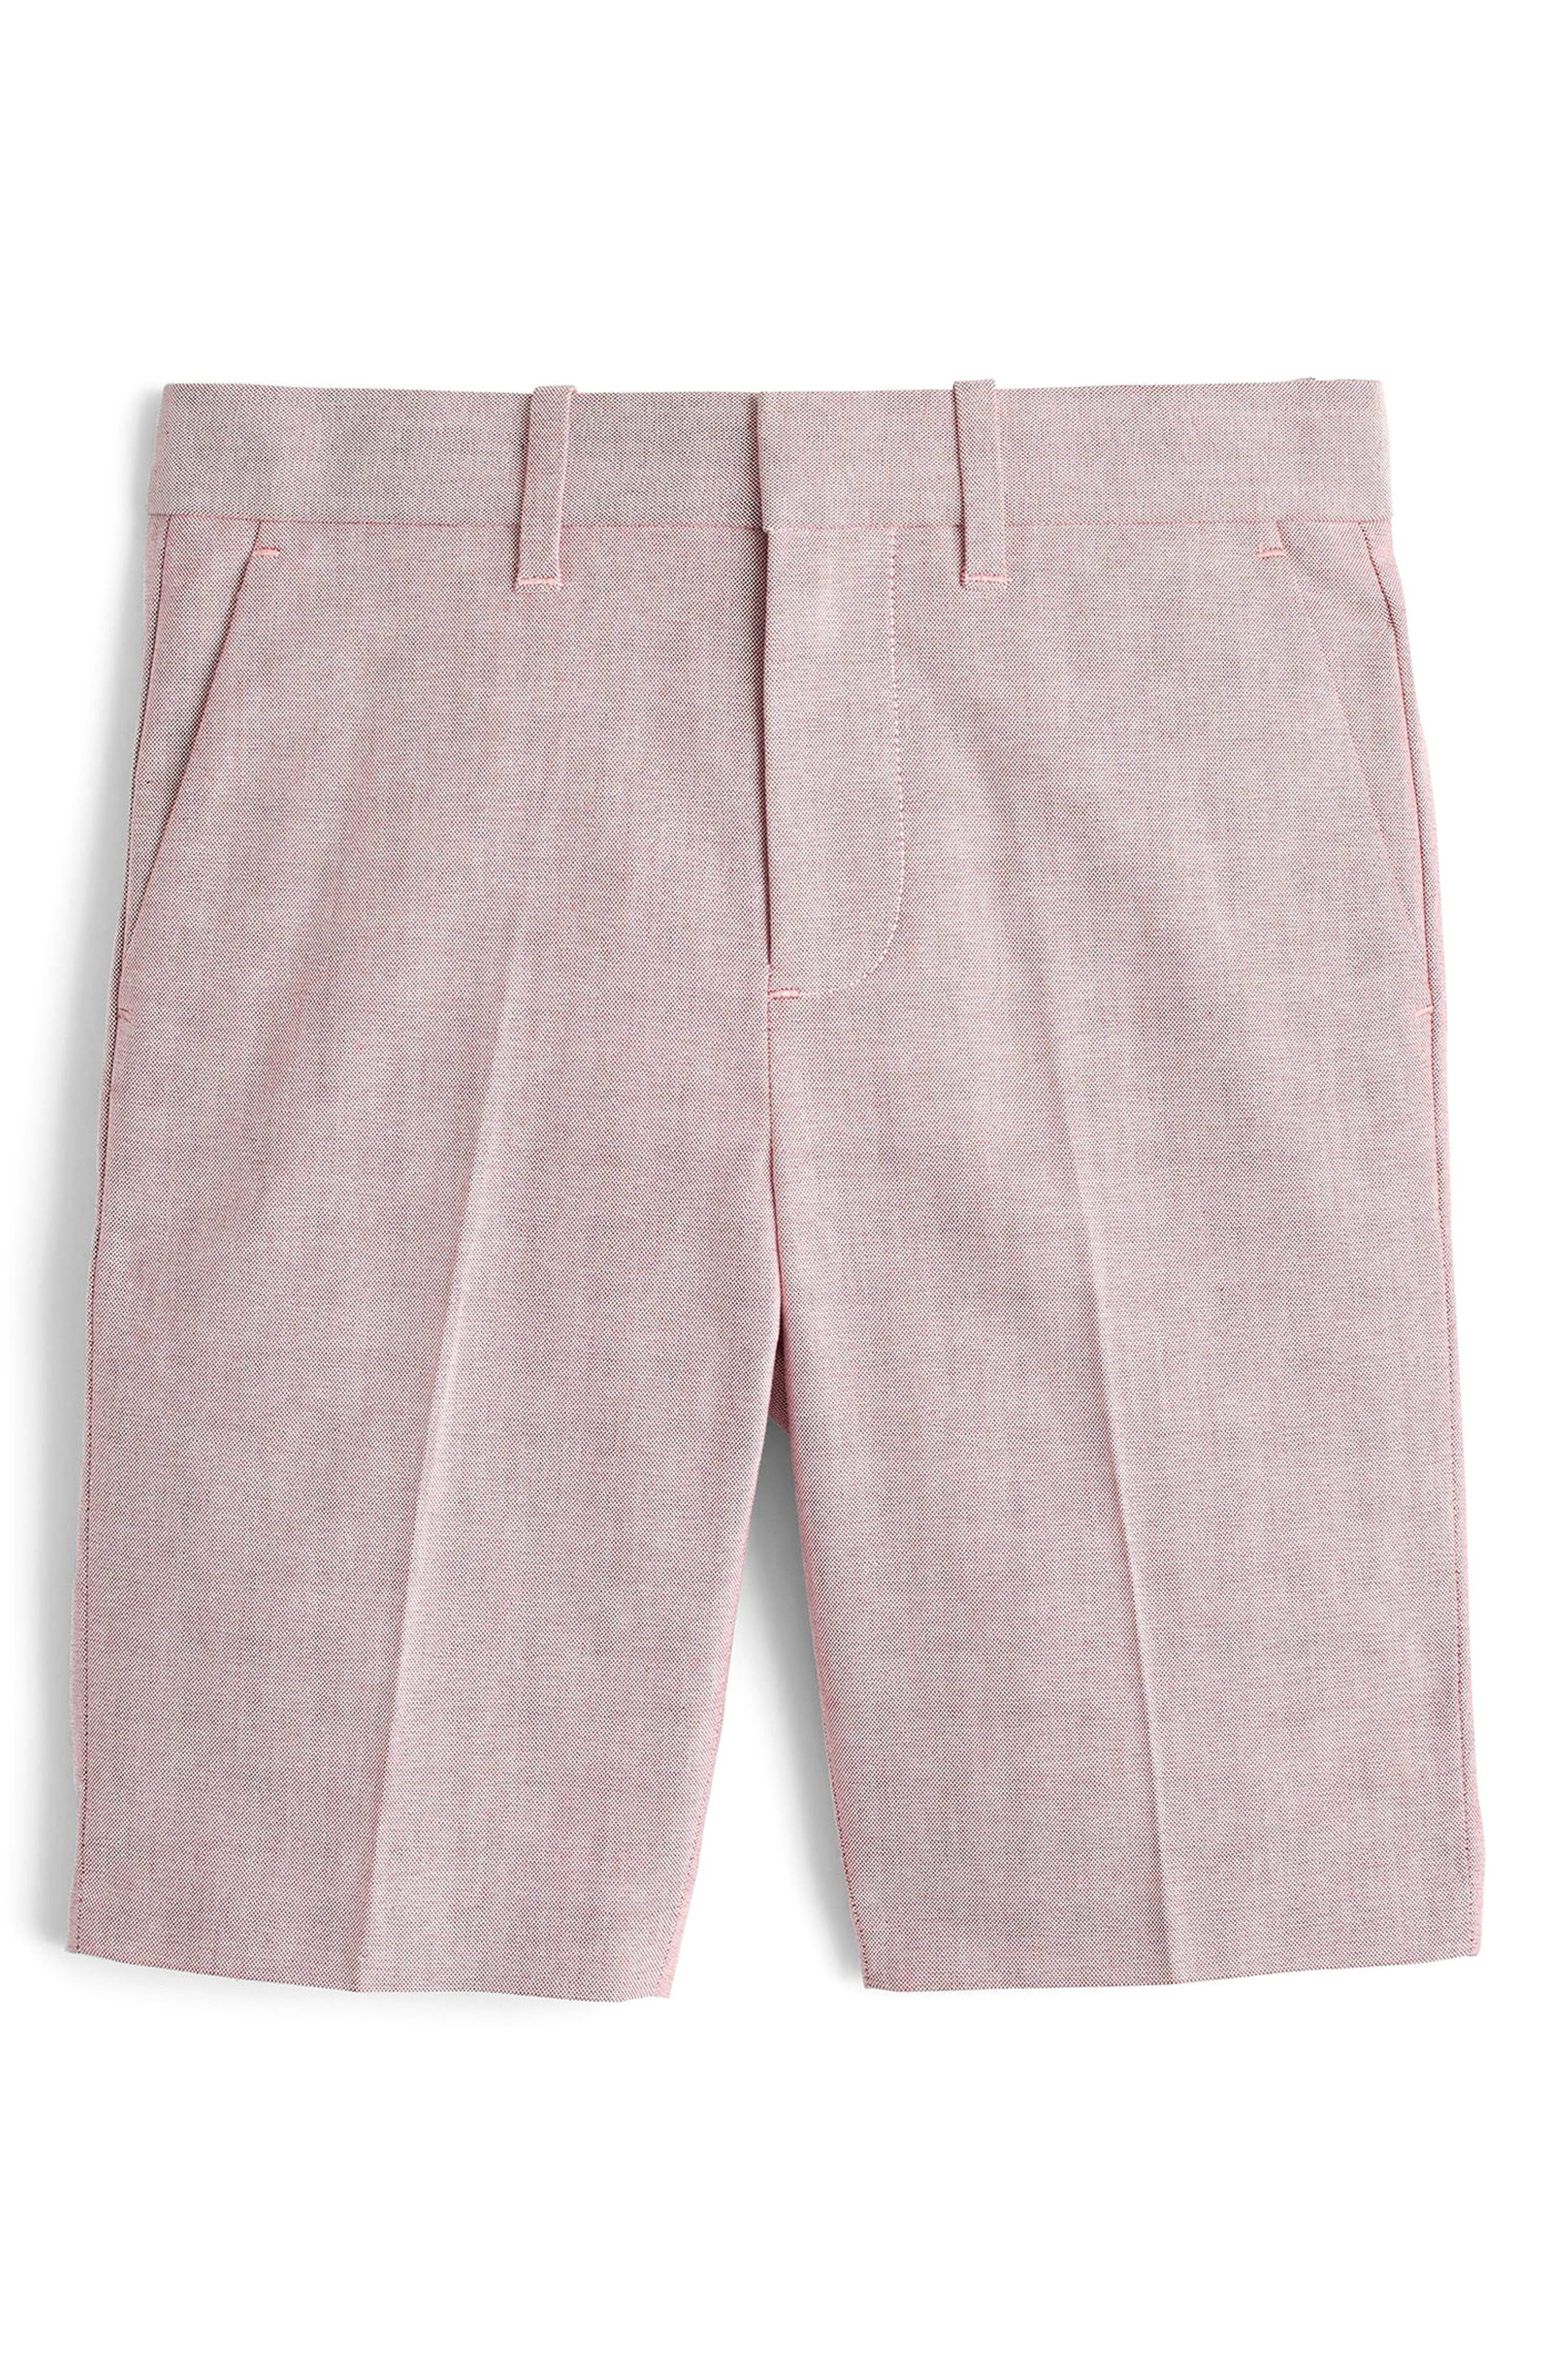 Ludlow Stretch Oxford Suit Shorts,                             Main thumbnail 1, color,                             600